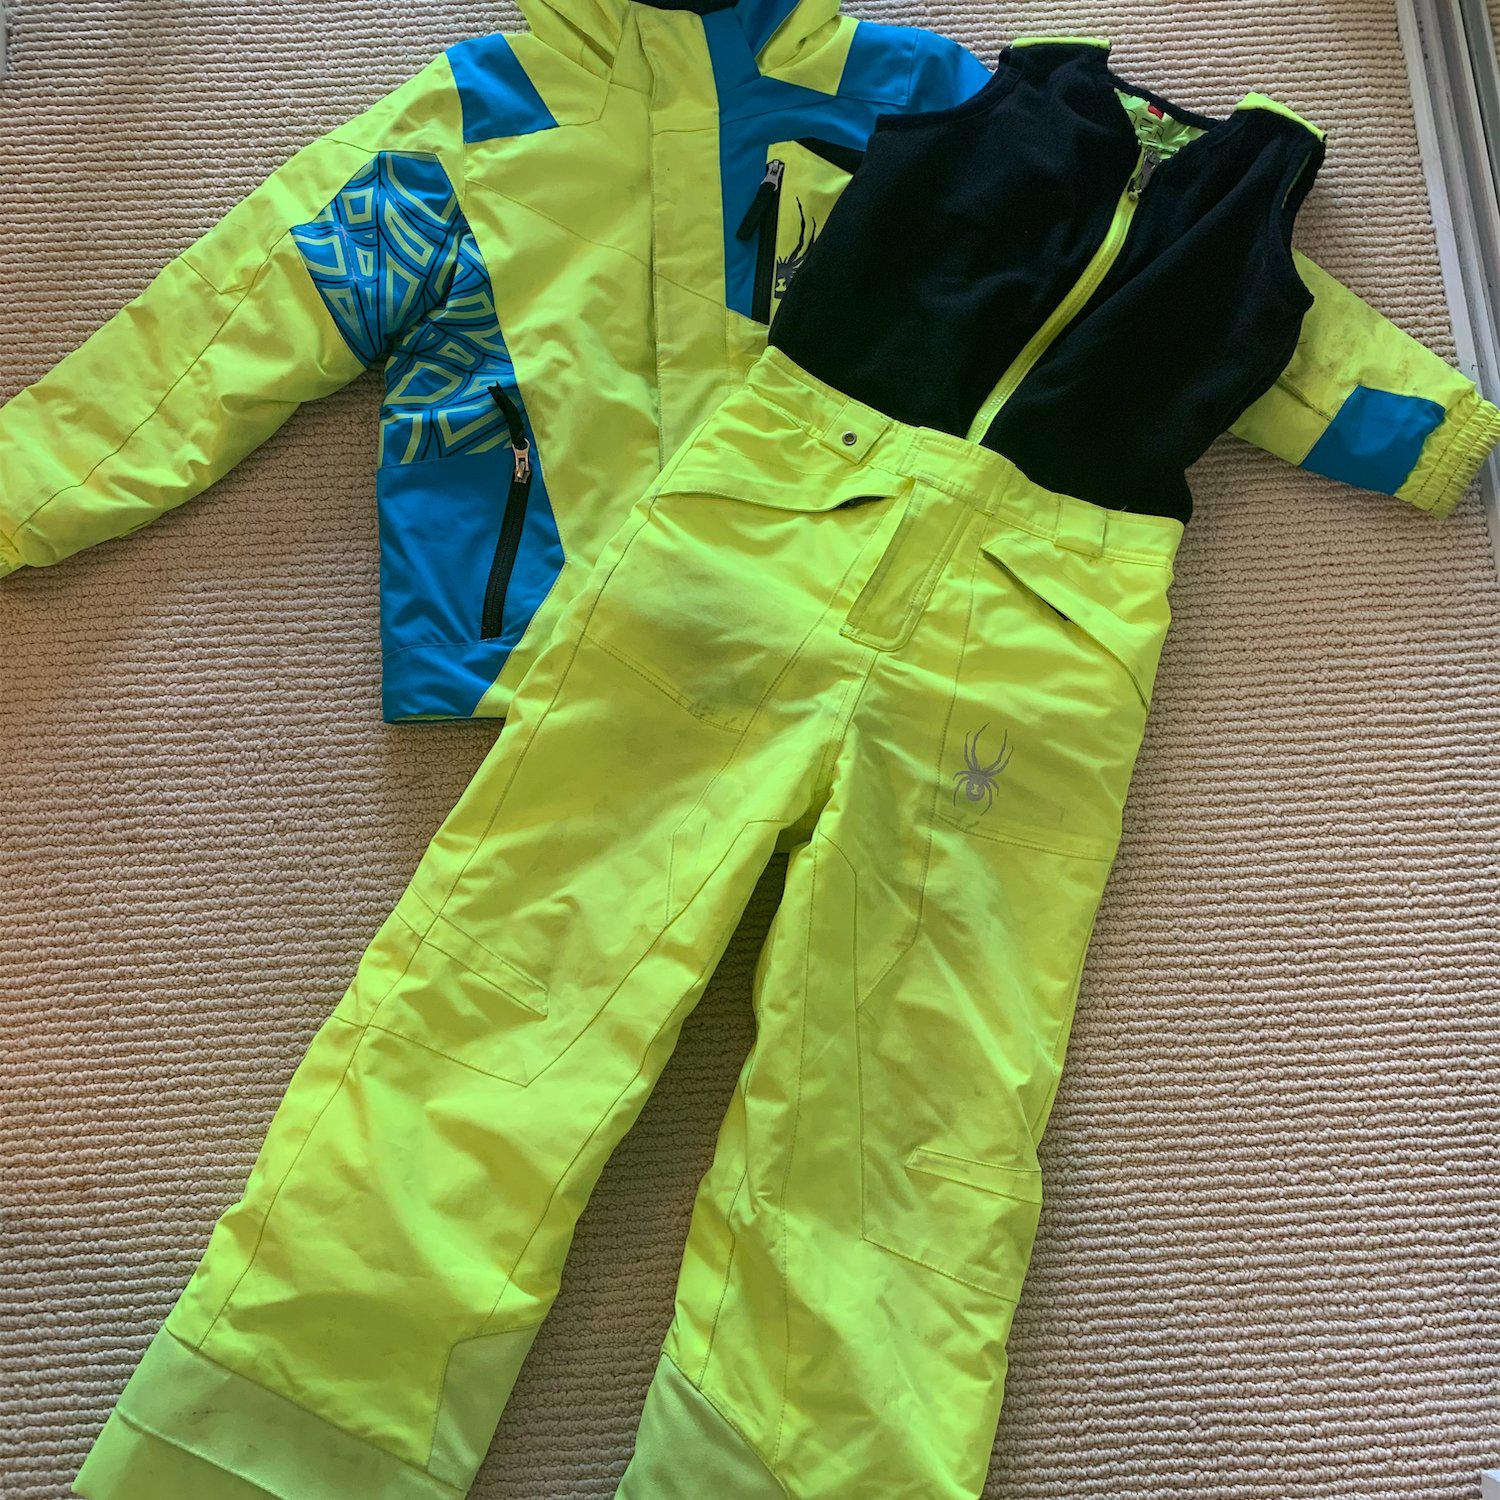 Kids Spyder size 7 Ski set